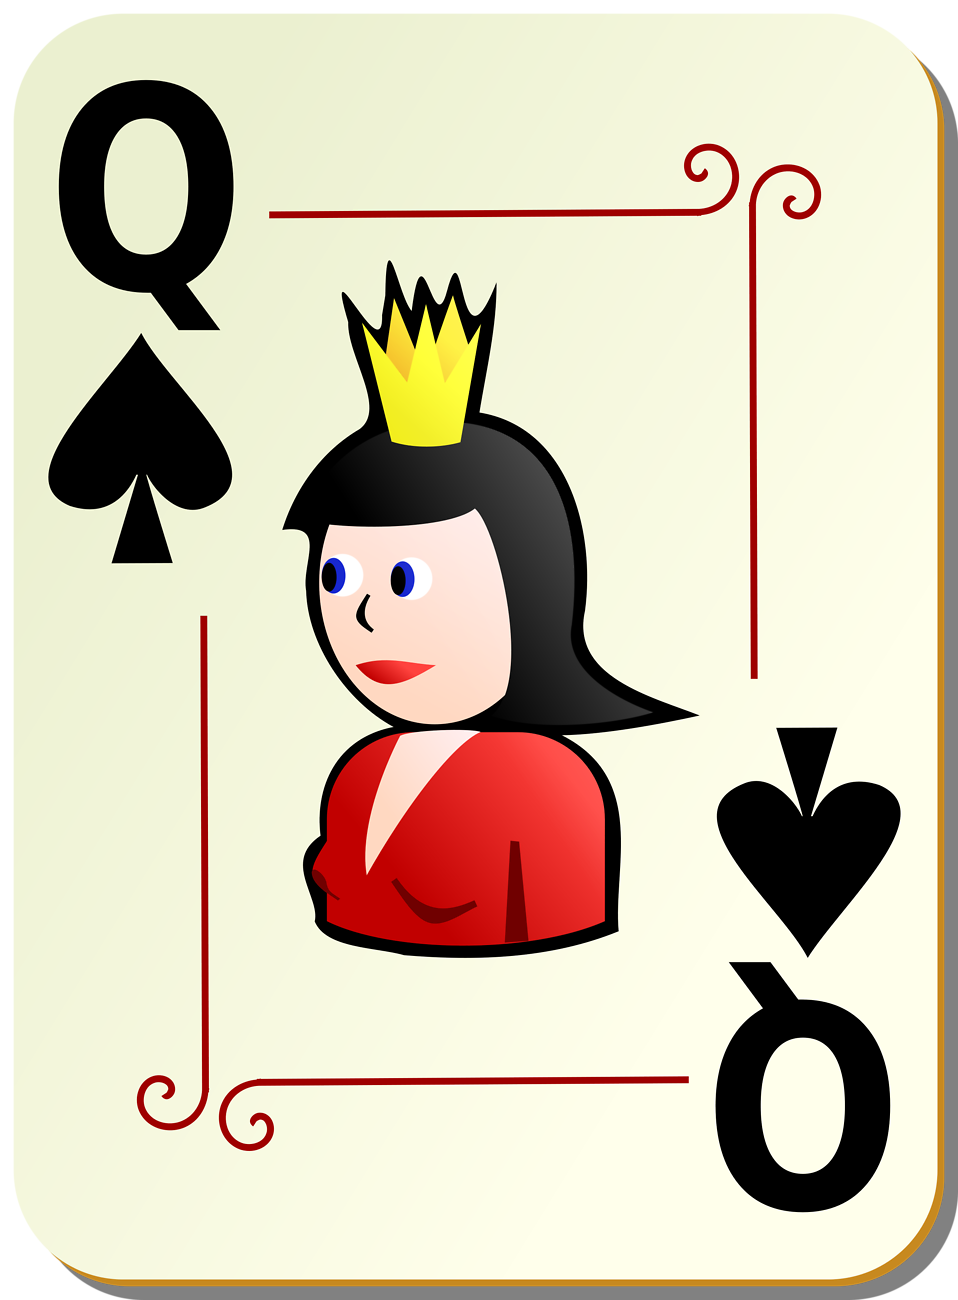 Playing Cards Free Stock Photo Illustration Of A Queen